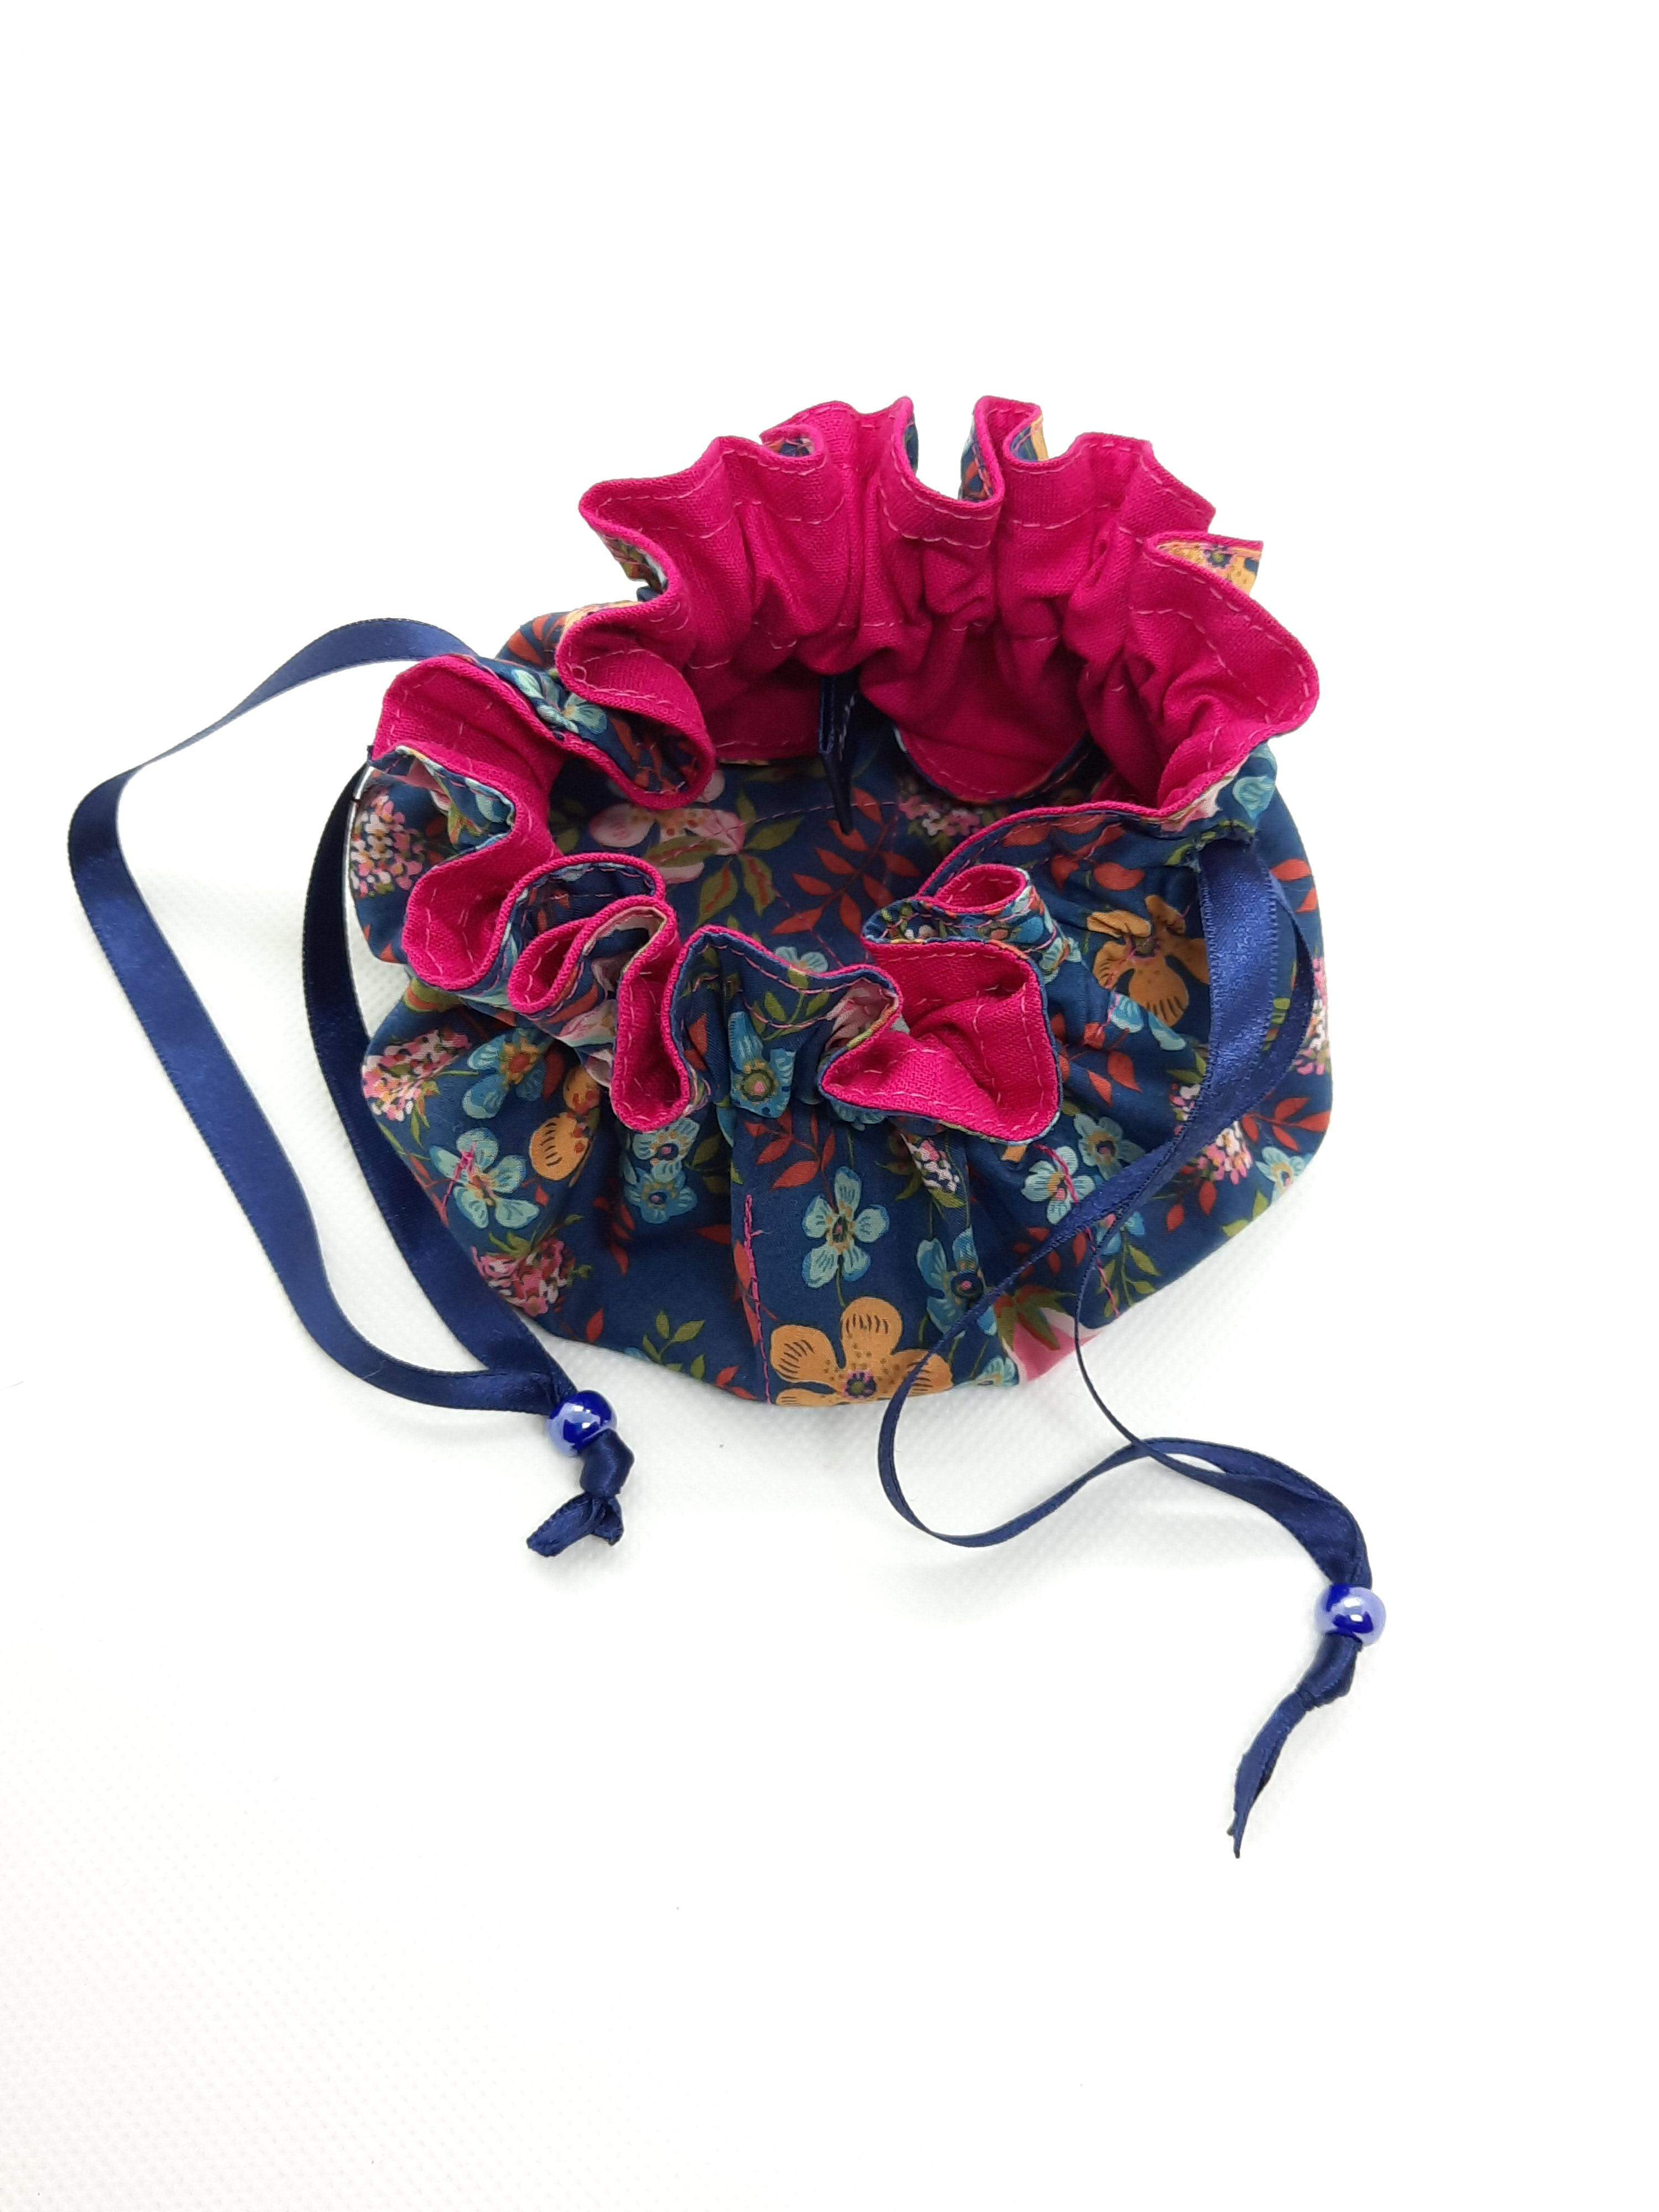 Jewellery Pouch - pink lining, blue ribbon, purple bead